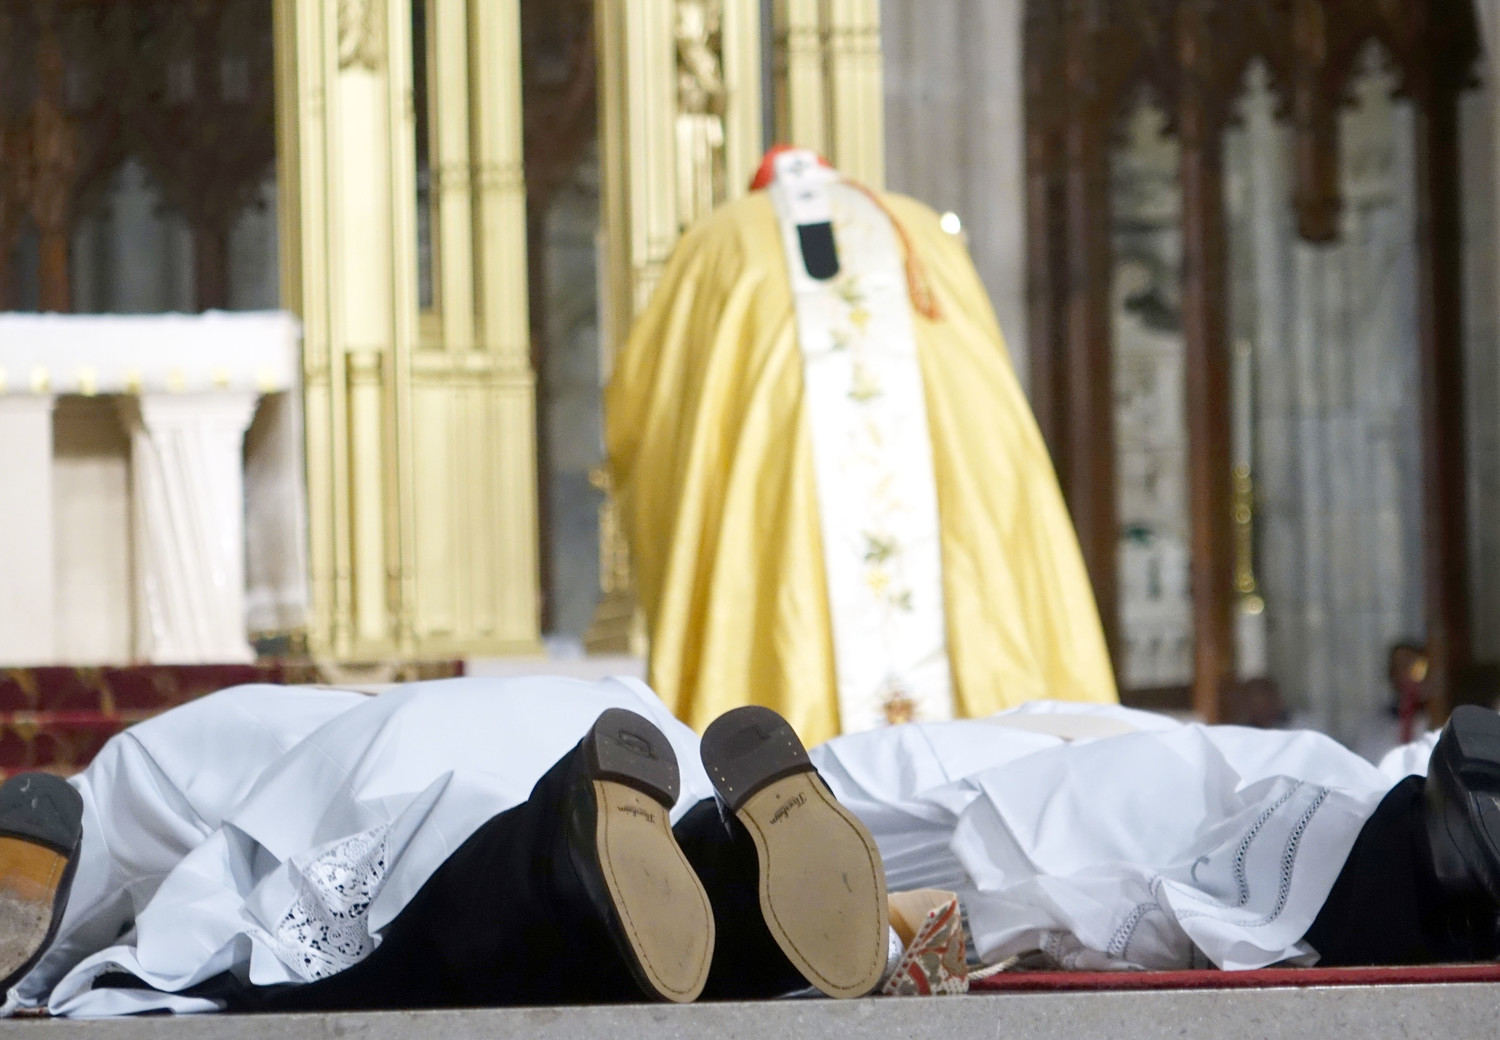 The candidates lay prostrate on the floor of the sanctuary as the Litany of Supplication is sung.